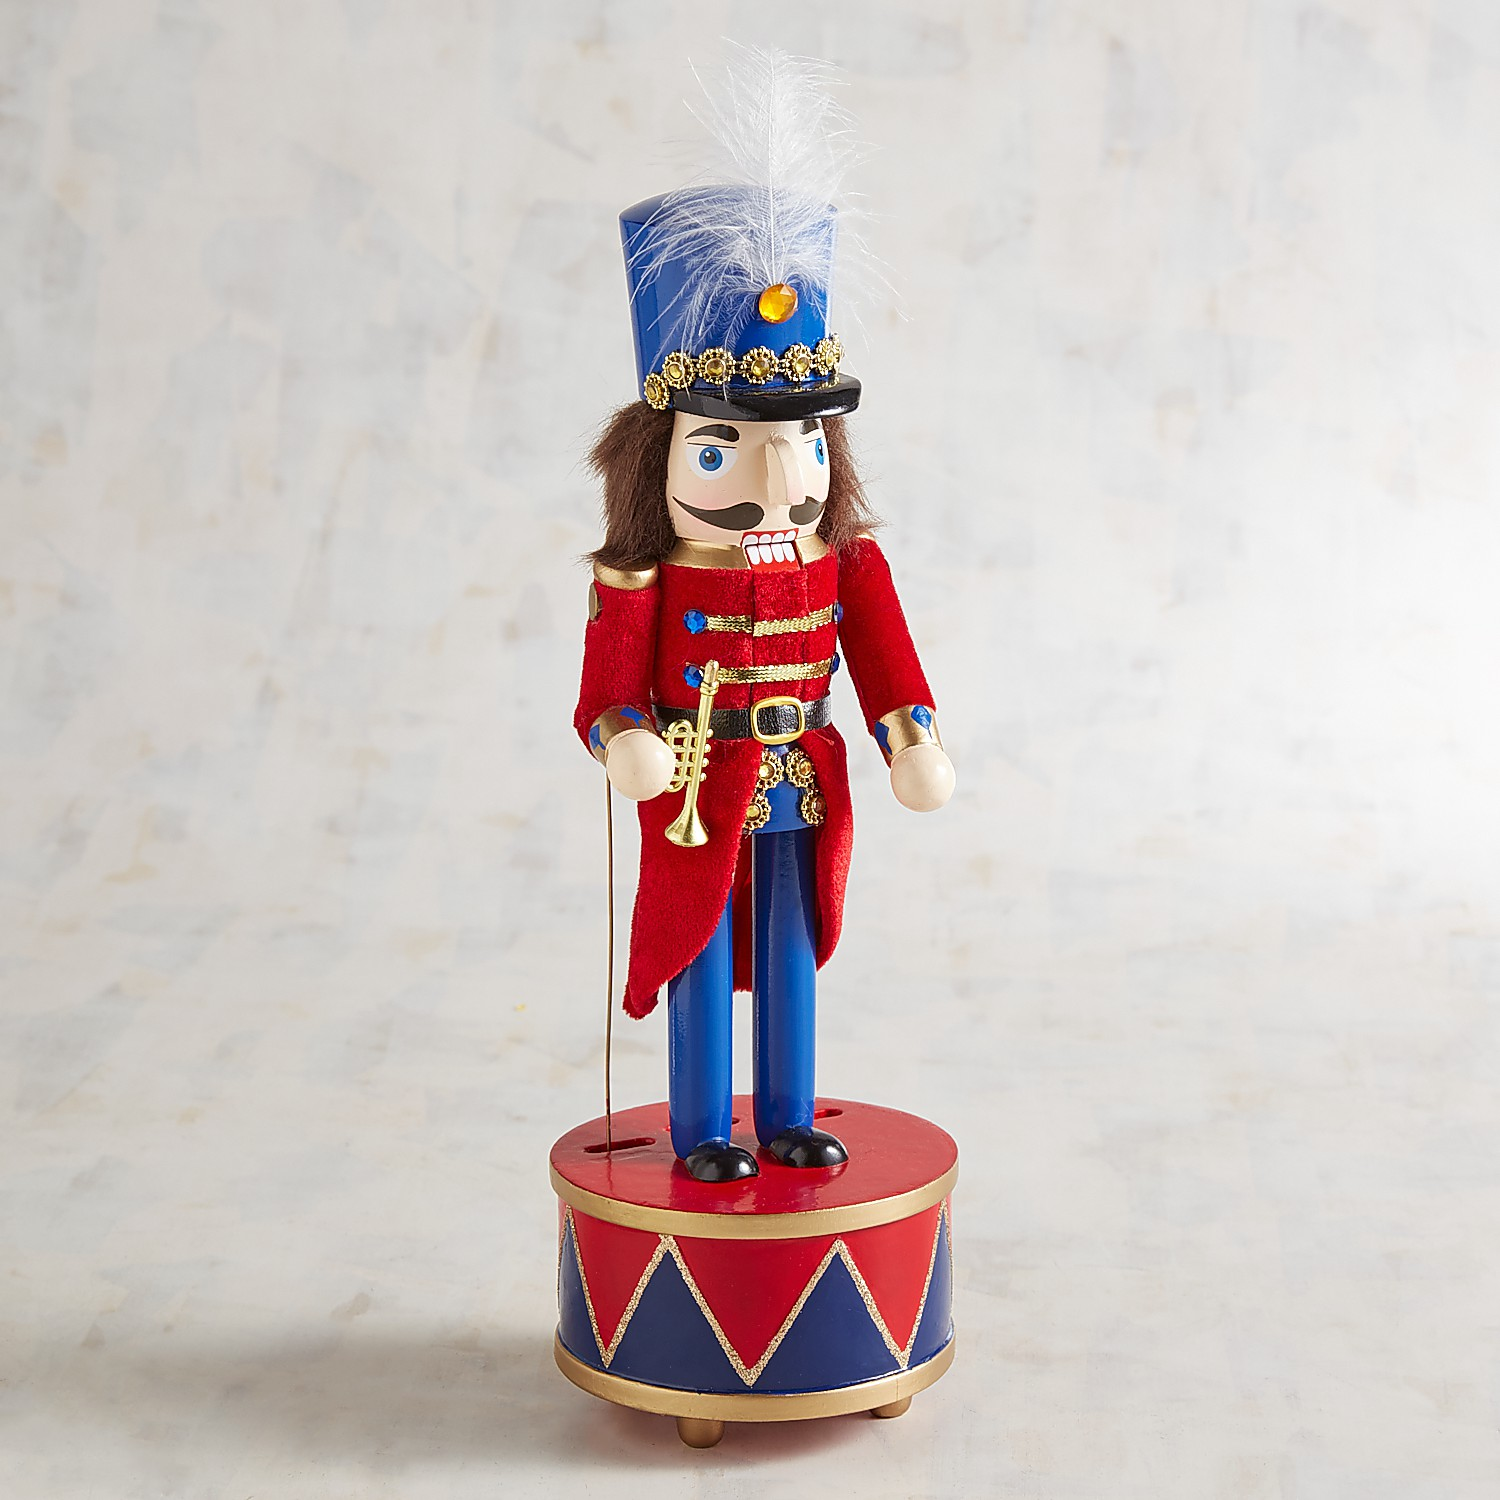 "Marching 15"" Nutcracker Music Box"